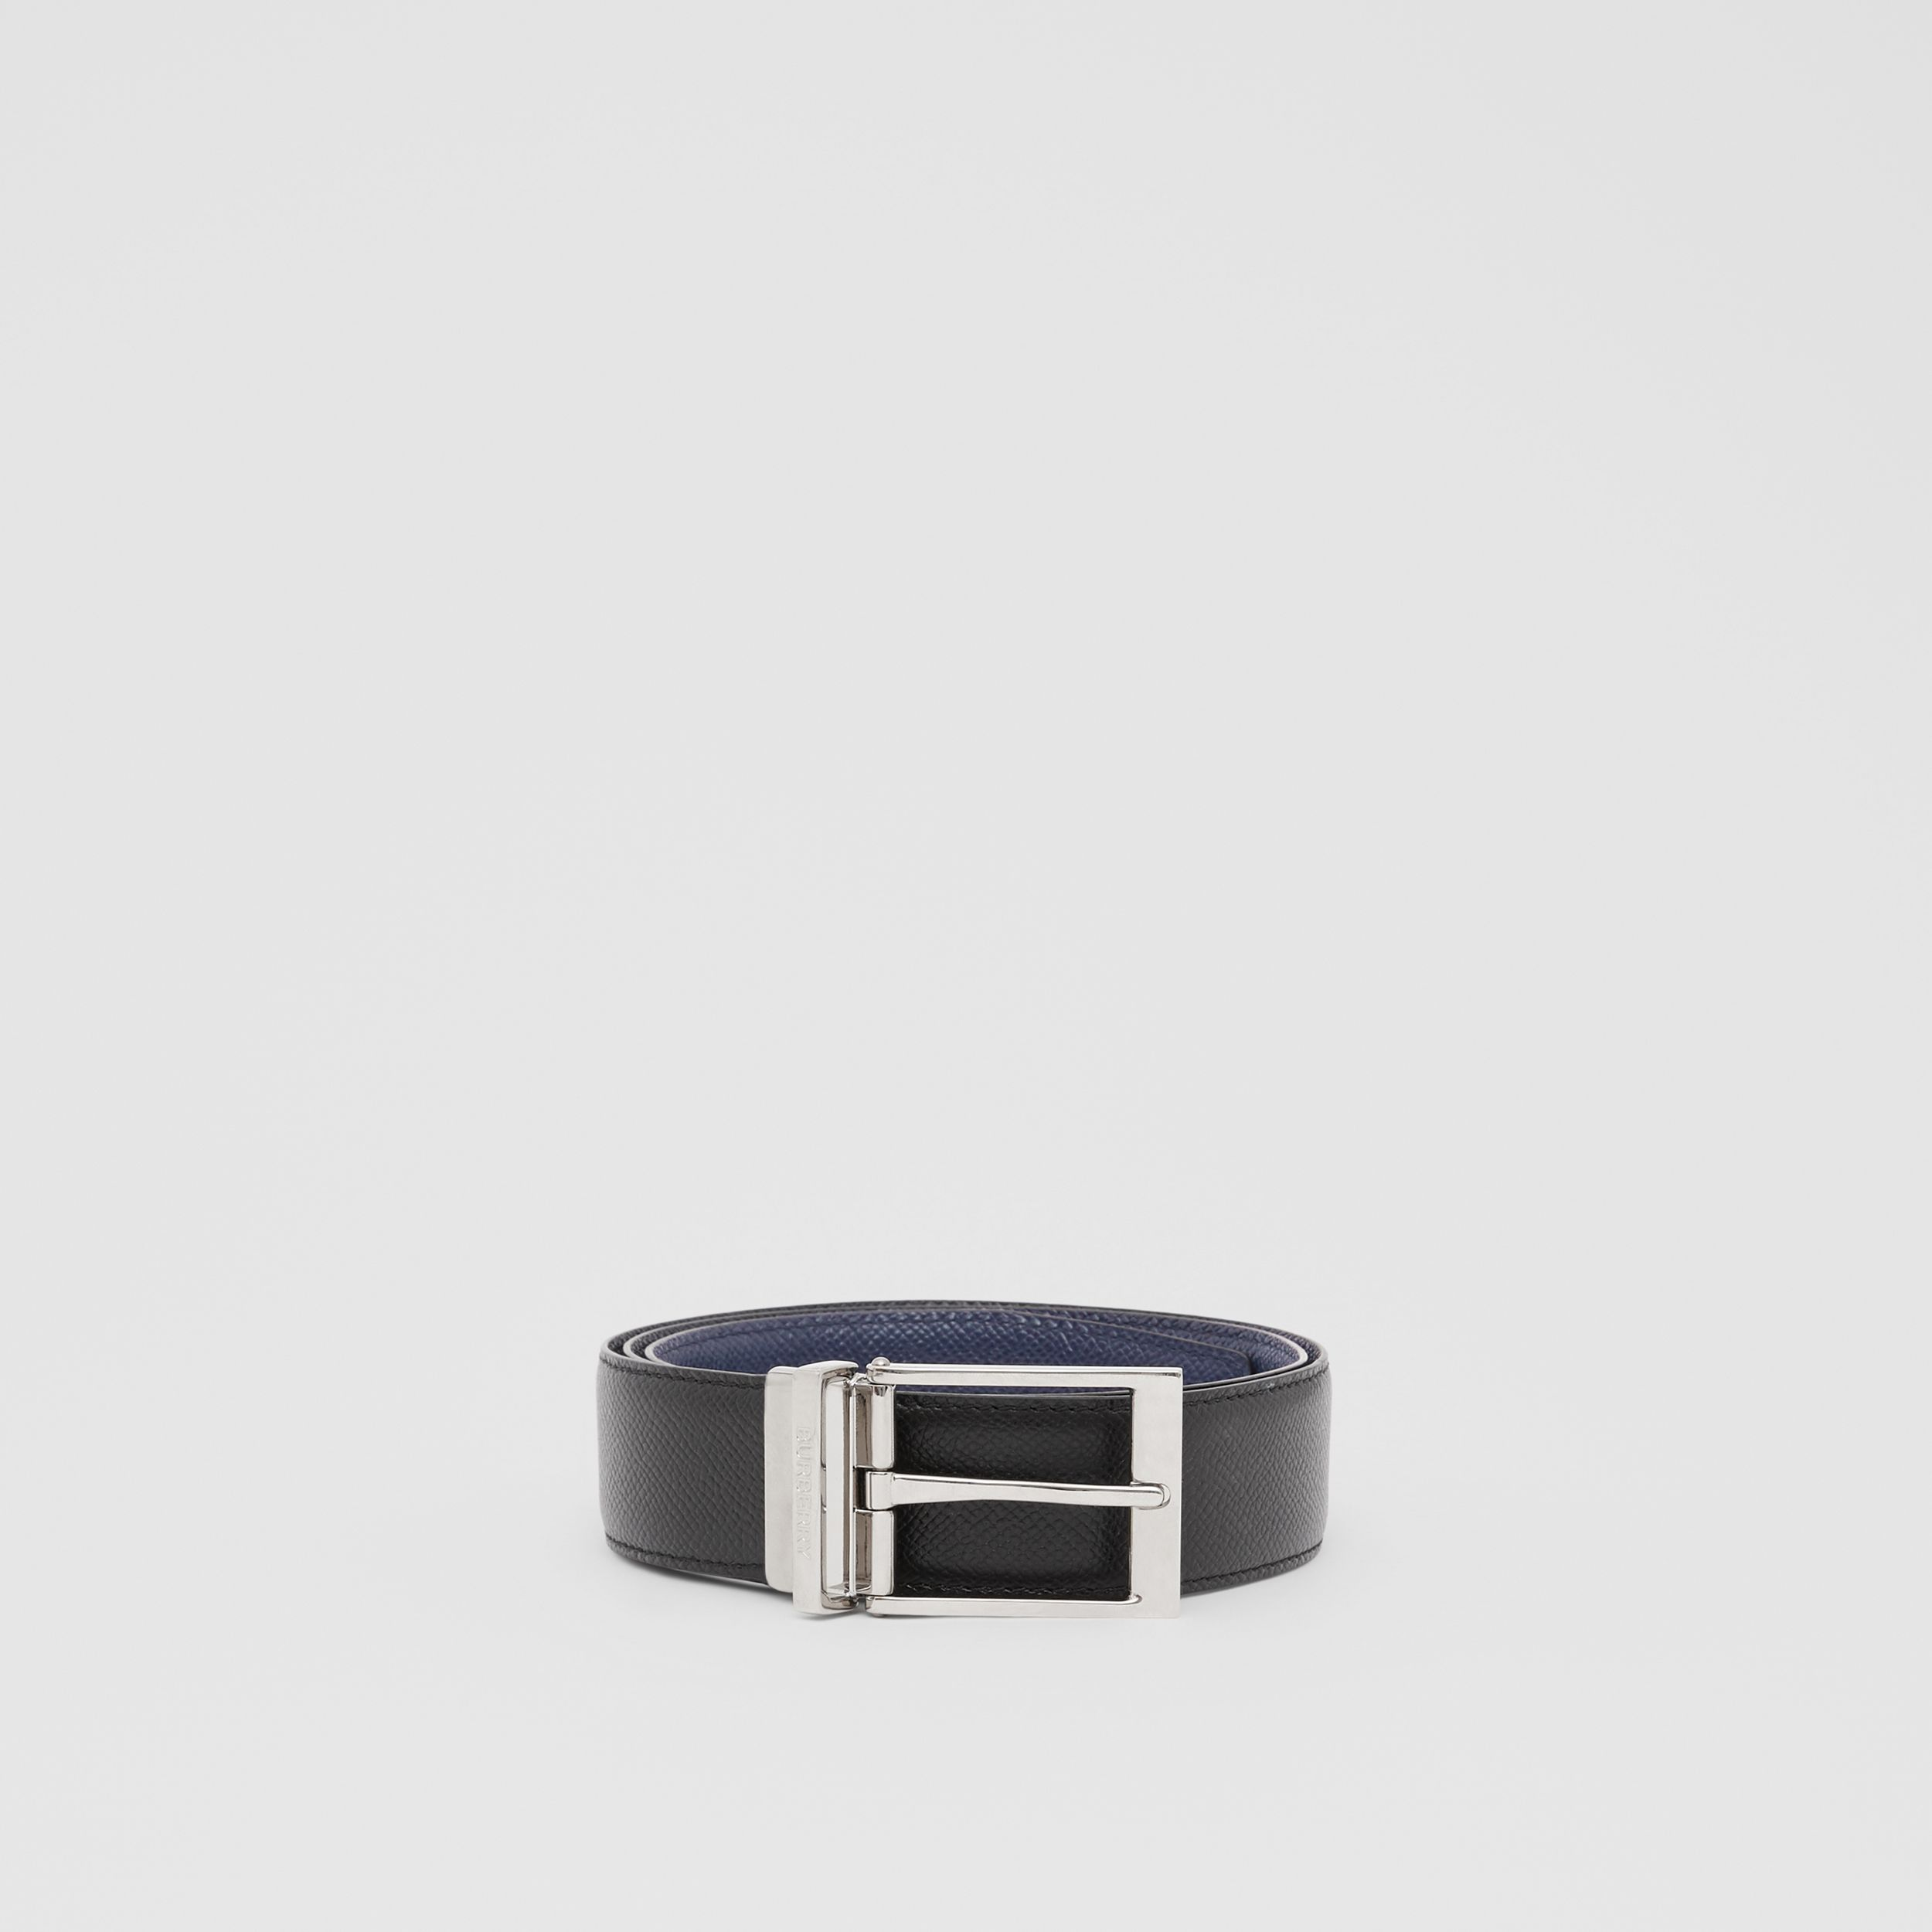 Reversible Grainy Leather Belt in Navy/black - Men | Burberry - 4